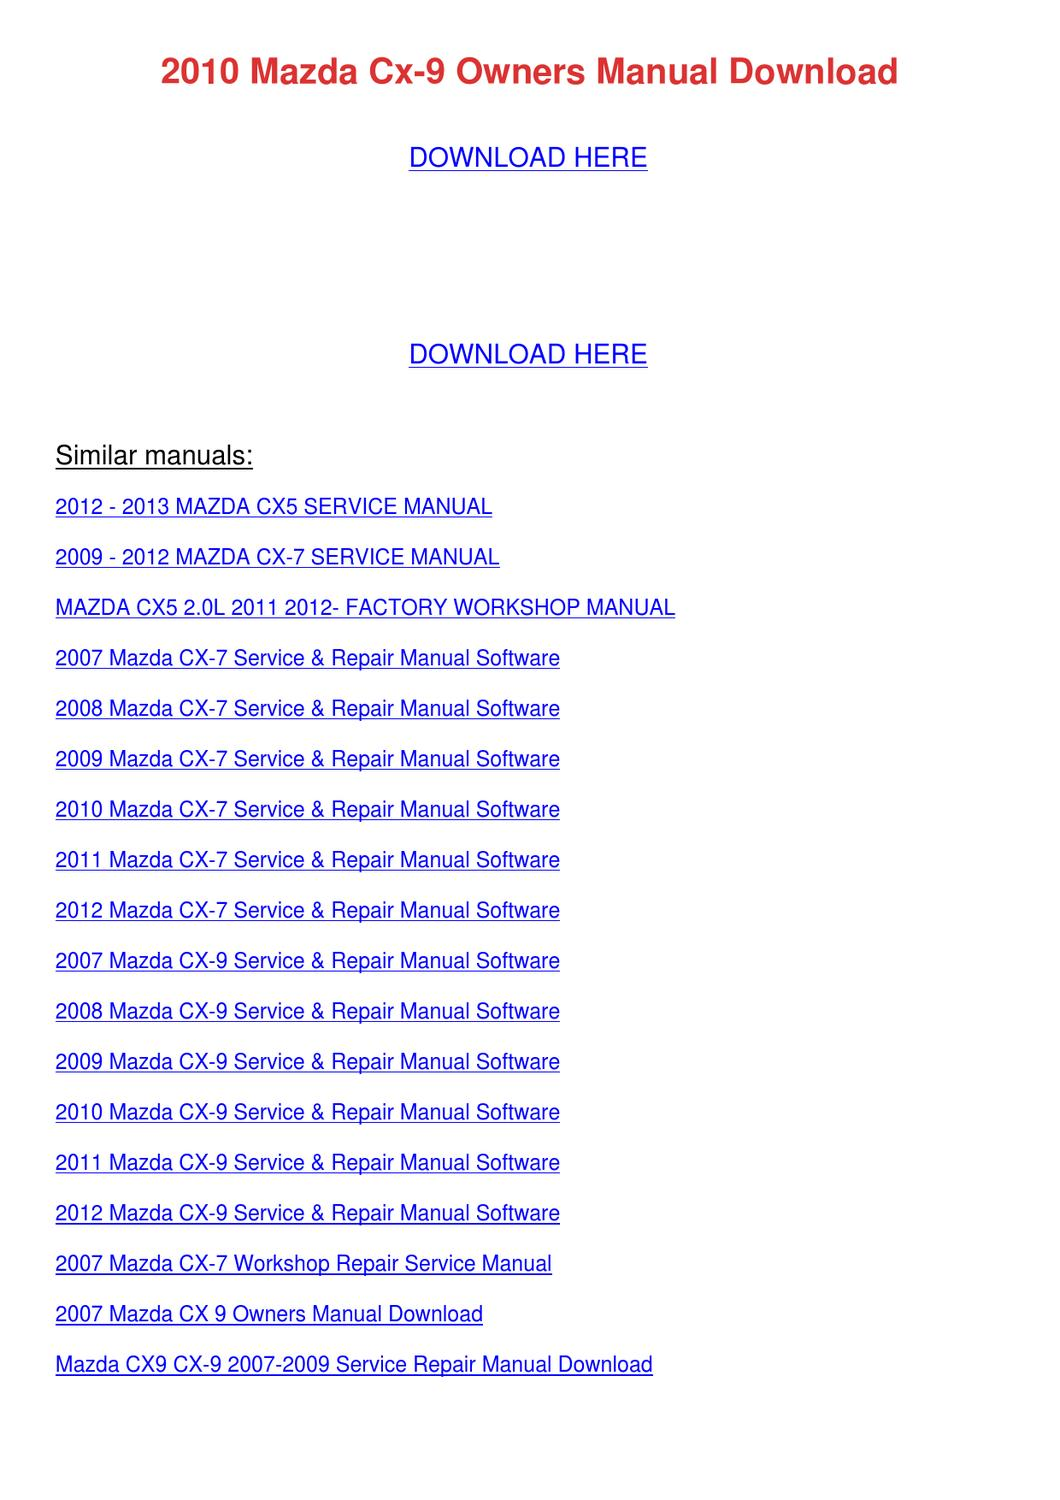 2010 Mazda Cx 9 Owners Manual Download by CharleneWinchester - issuu